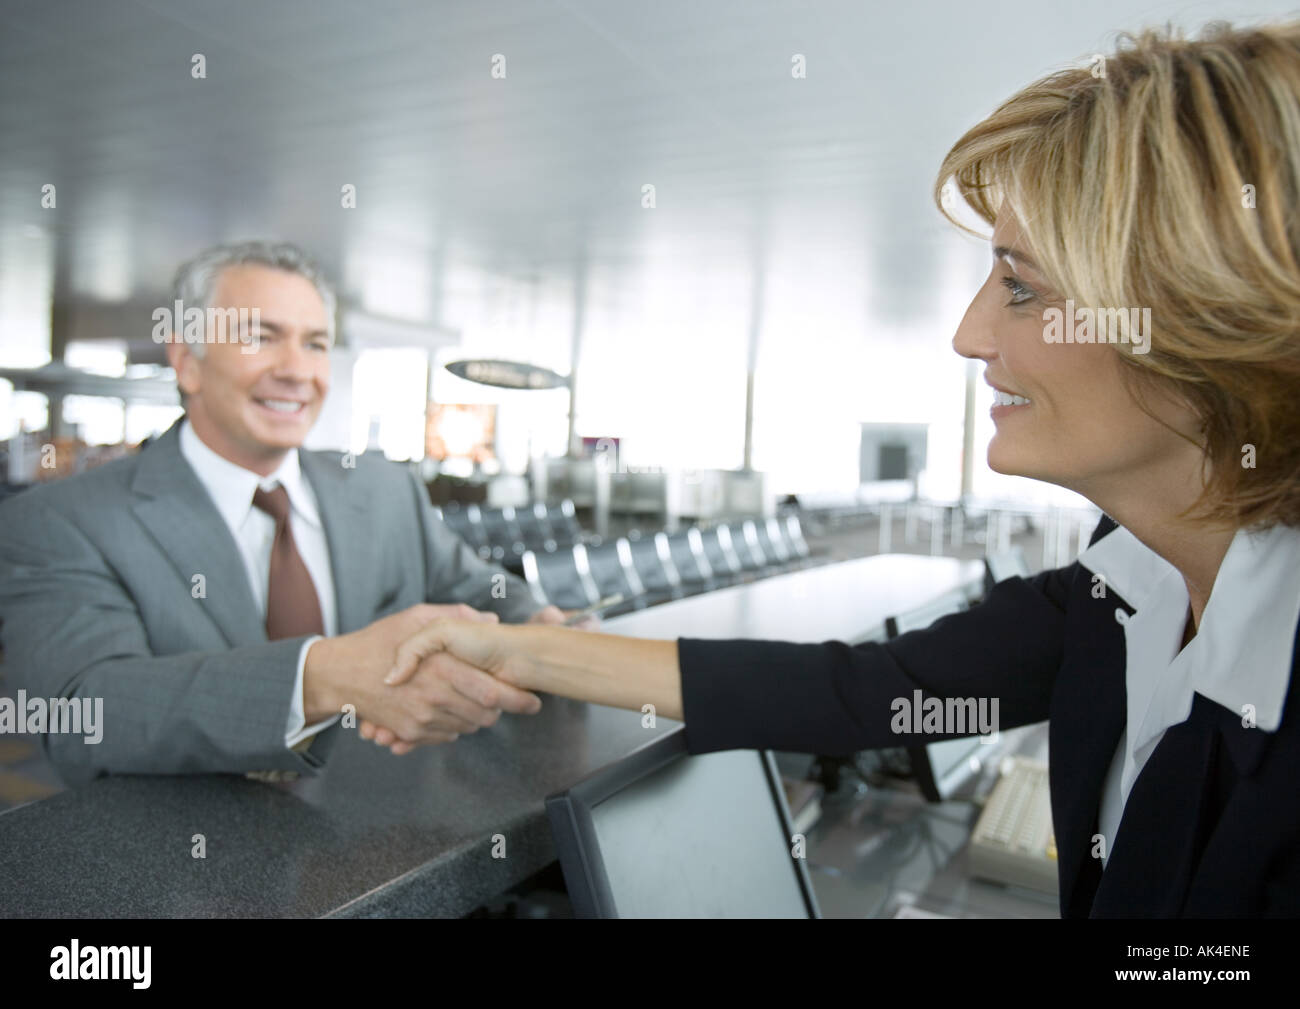 Airline attendant shaking hands with passenger - Stock Image